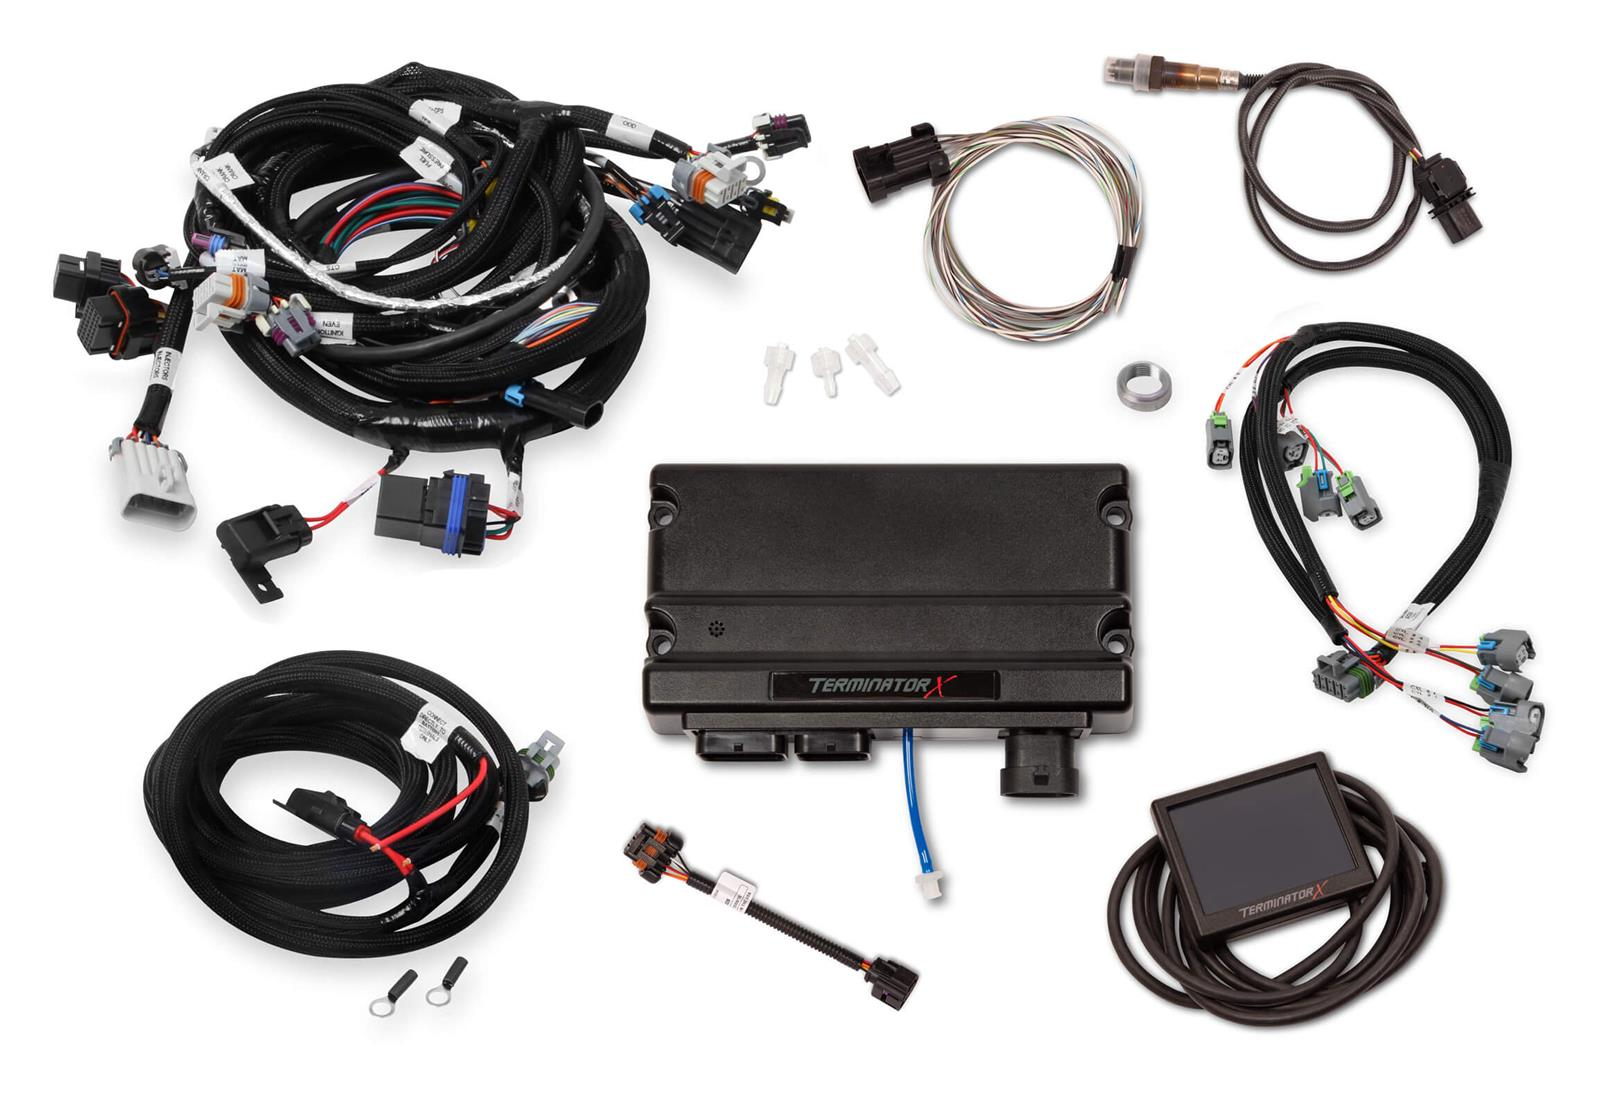 hight resolution of holley terminator x engine management systems 550 905 free shipping on orders over 99 at summit racing